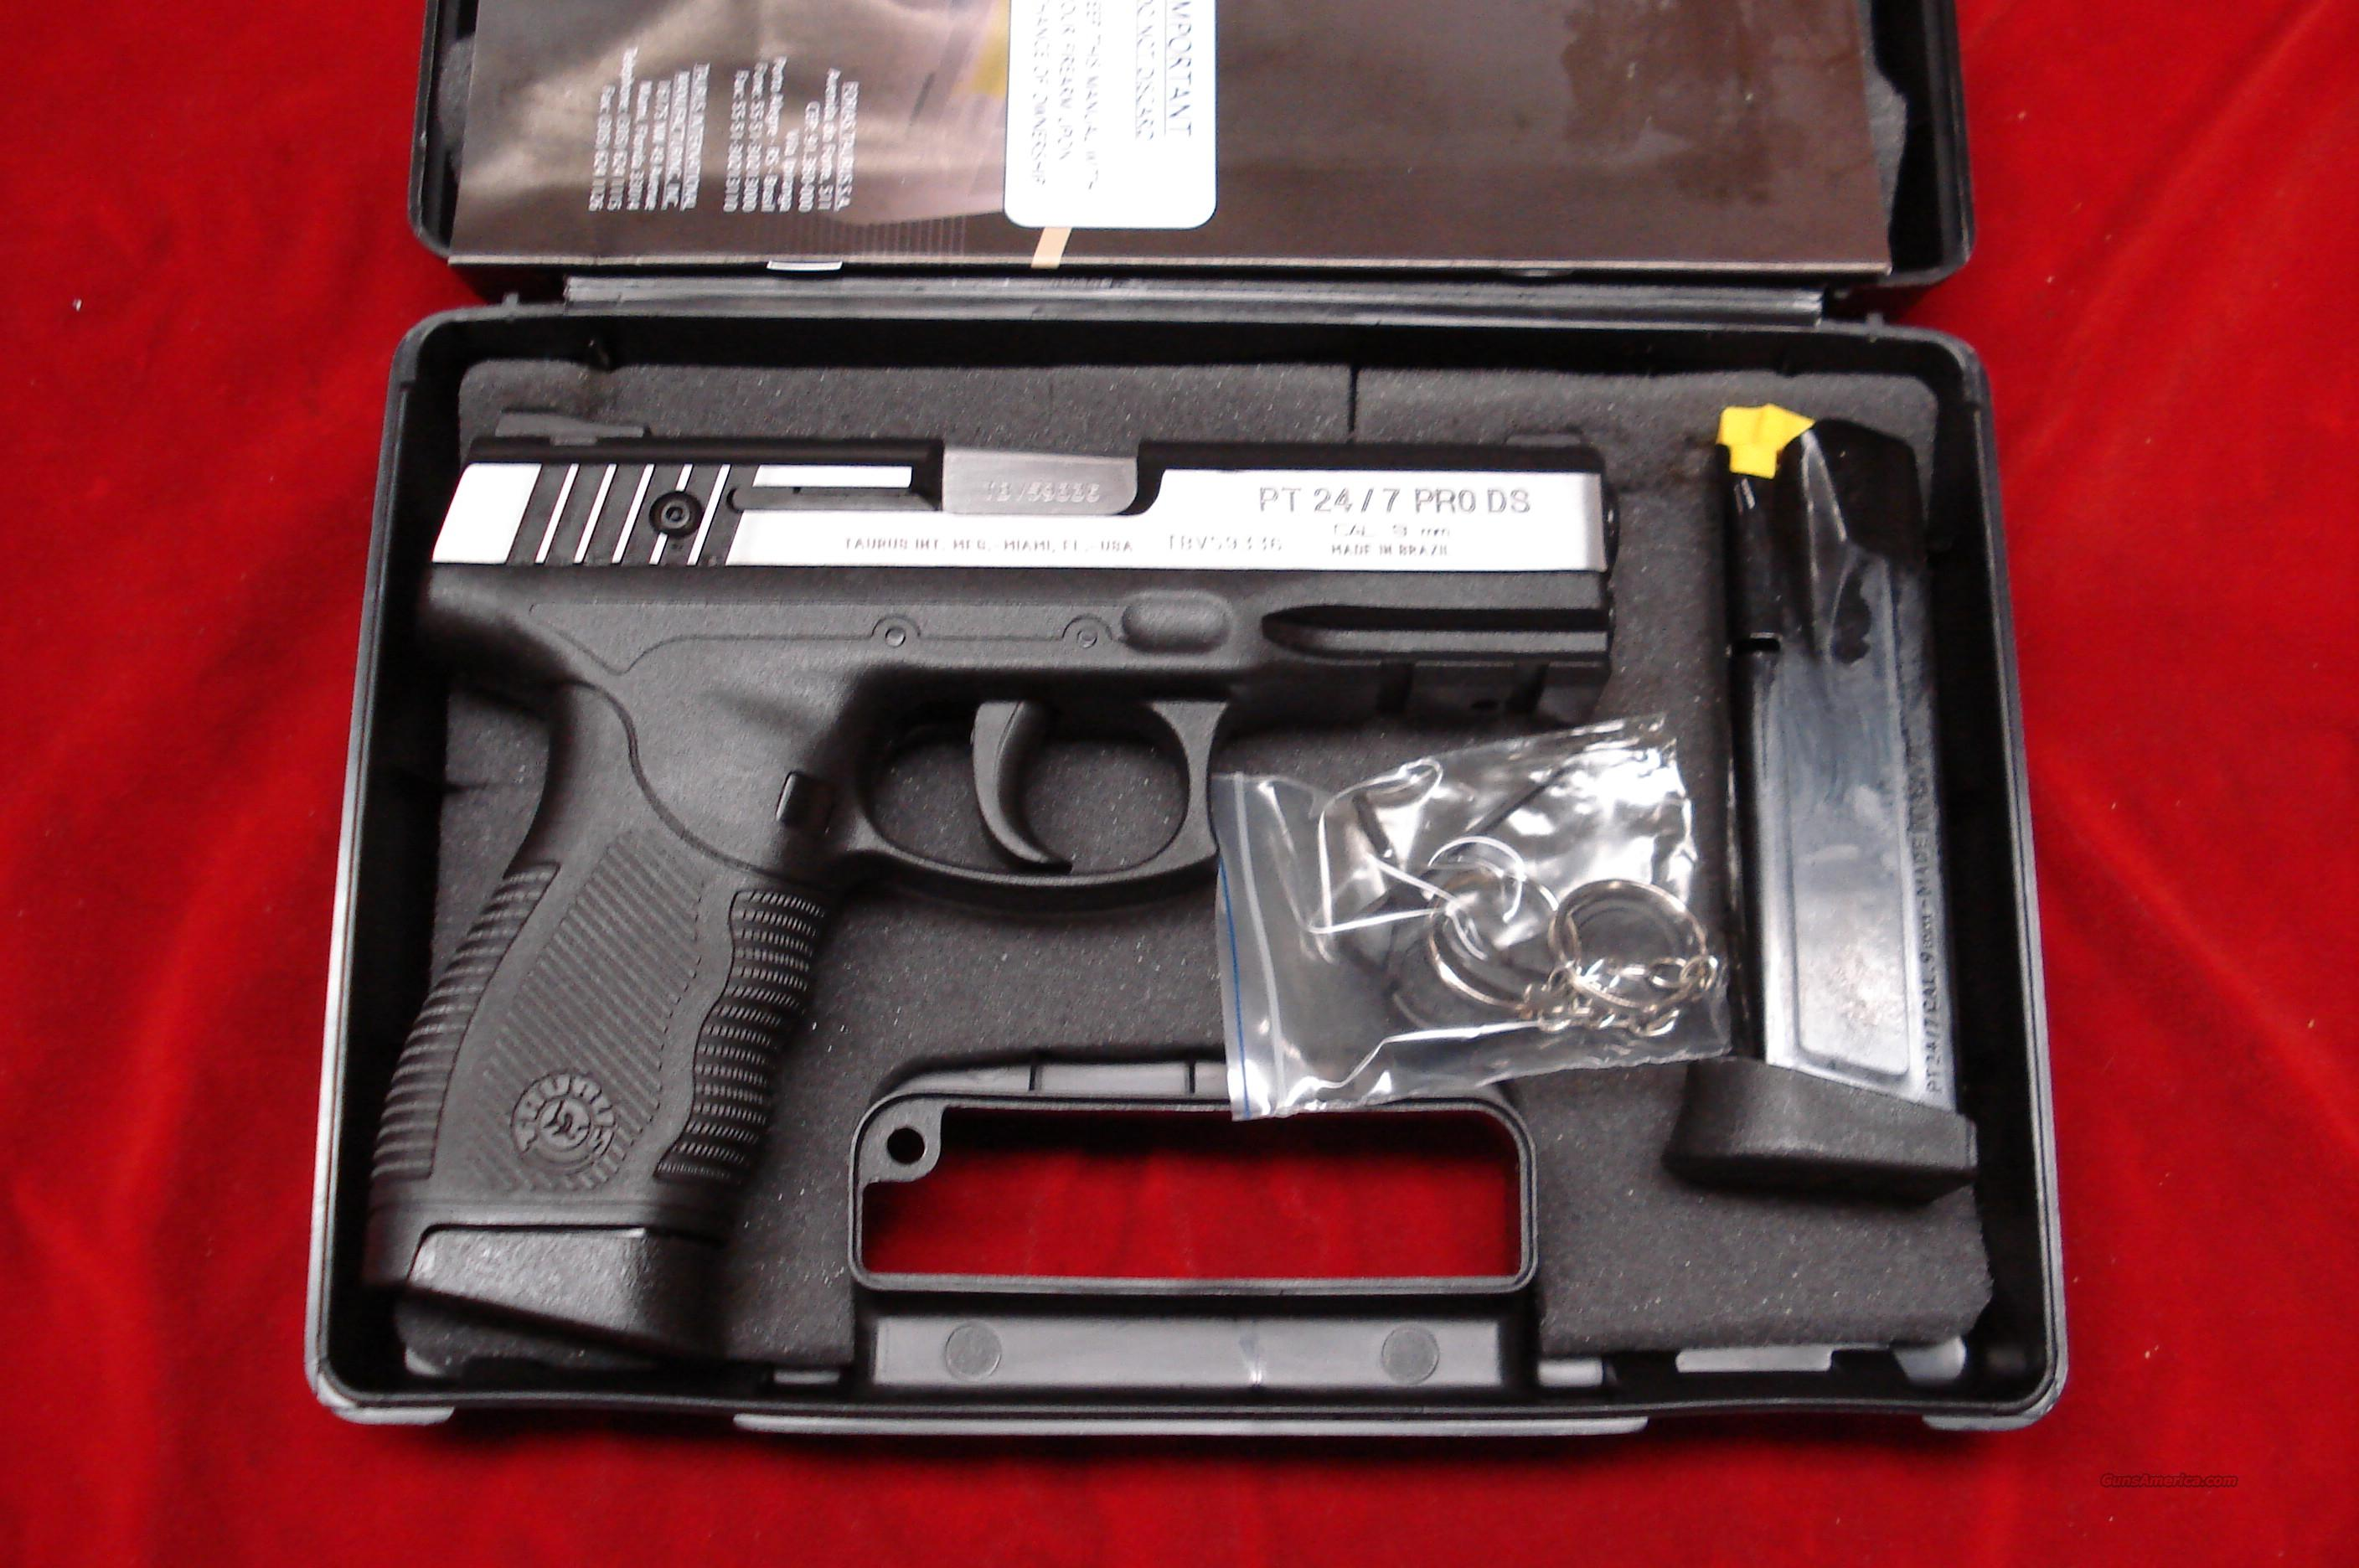 TAURUS PT24/7 PRO 9MM STAINLESS DUO-TONE NEW IN THE BOX  Guns > Pistols > Taurus Pistols/Revolvers > Pistols > Polymer Frame